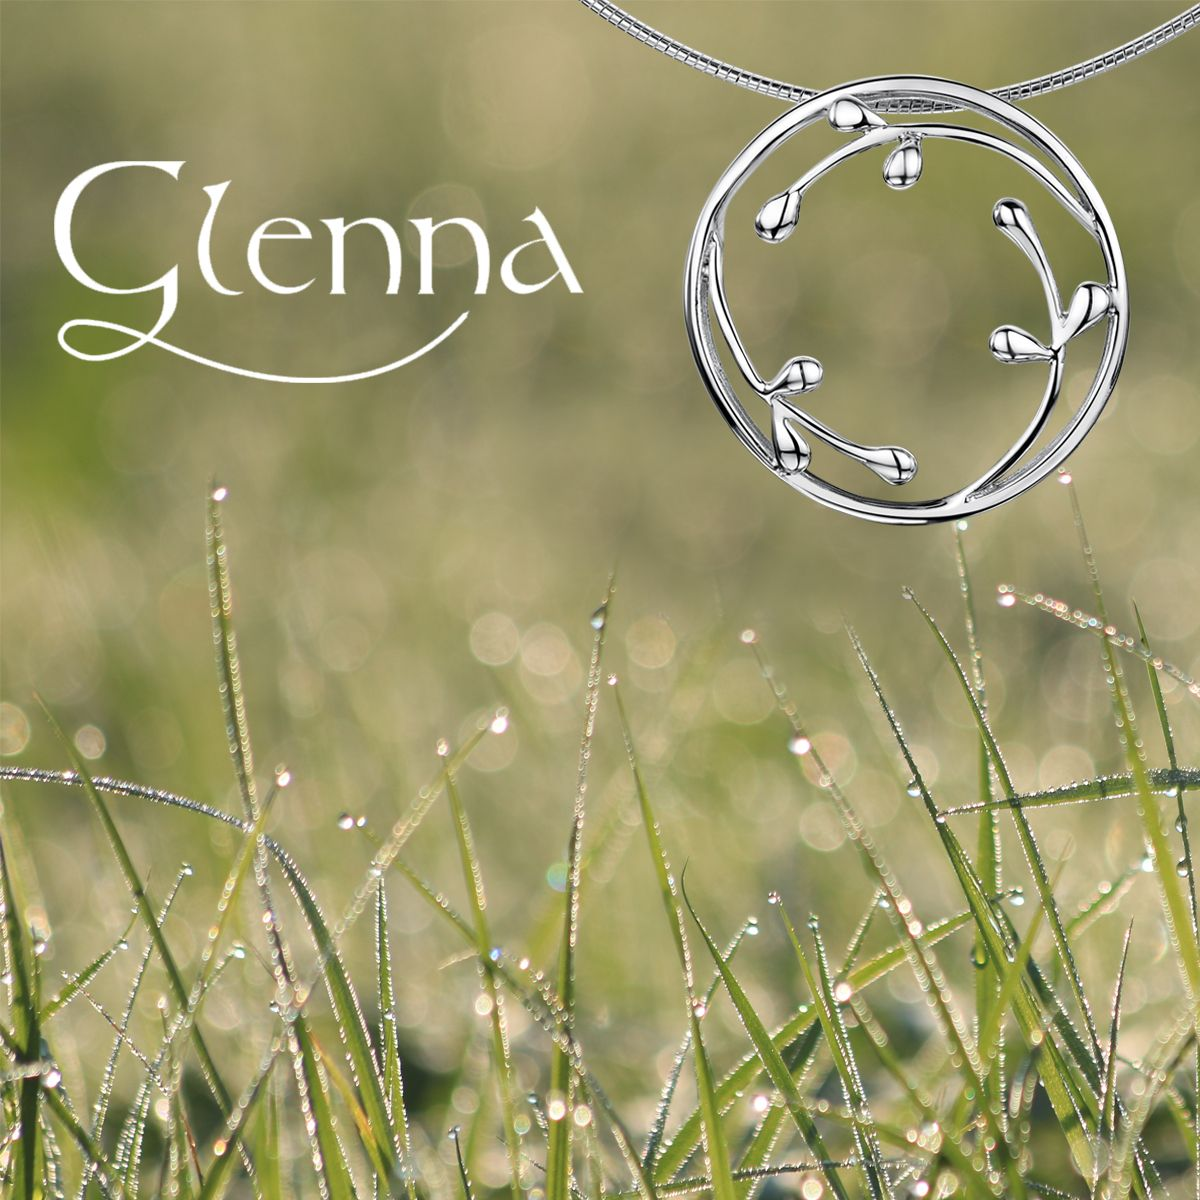 Free Delivery on all orders & Free Glenna Displays